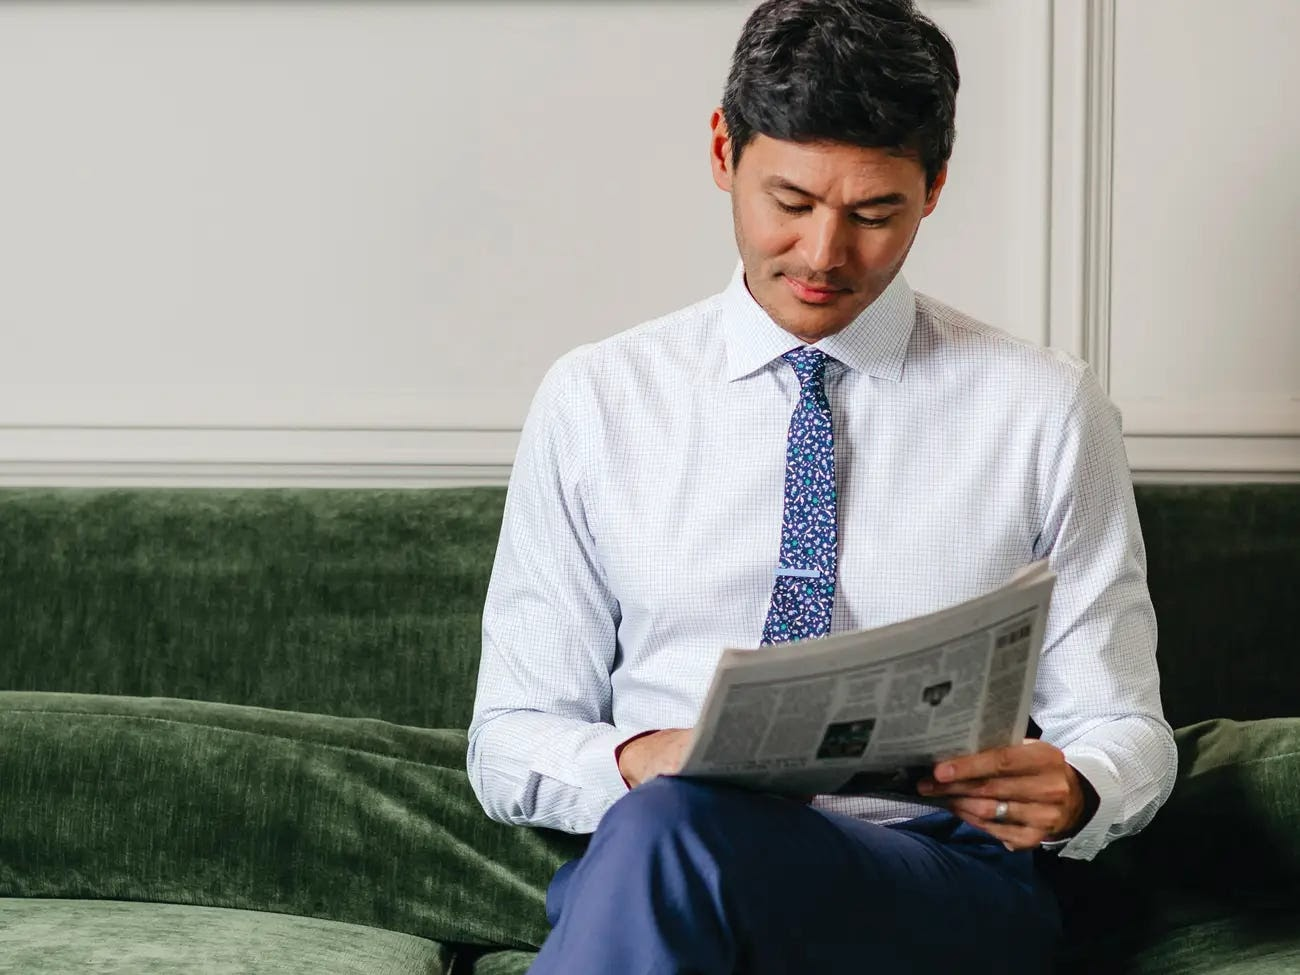 a business man in a business professional suit reads the newspaper